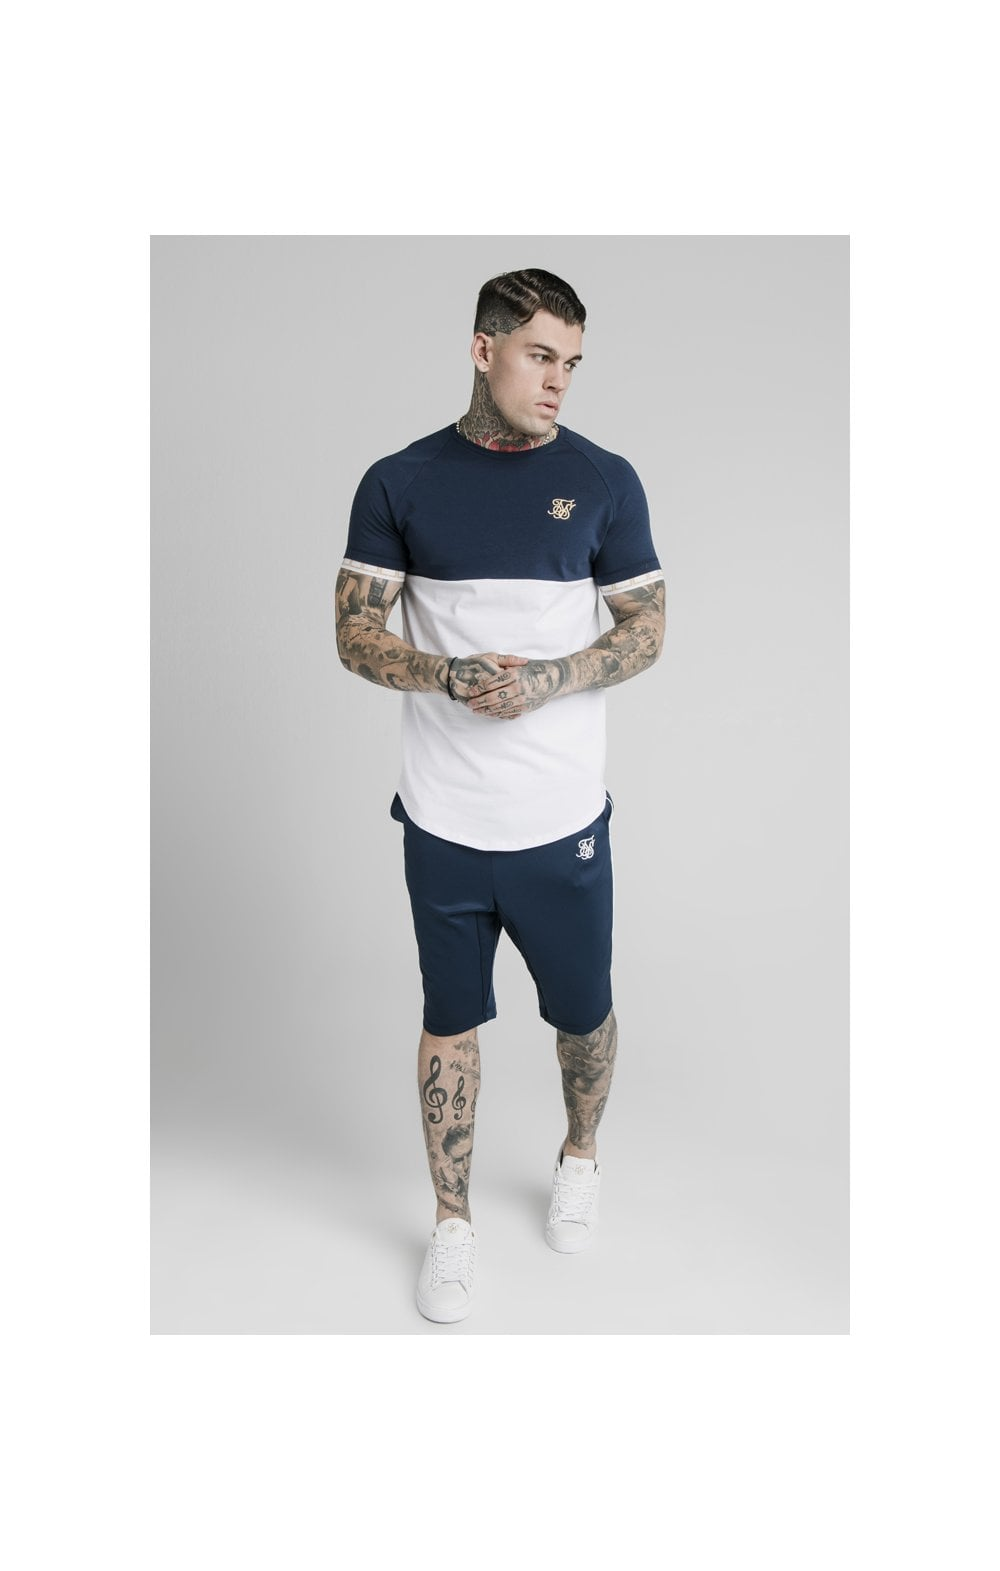 SikSilk S/S Cut & Sew Tech Tee - Navy & White (1)